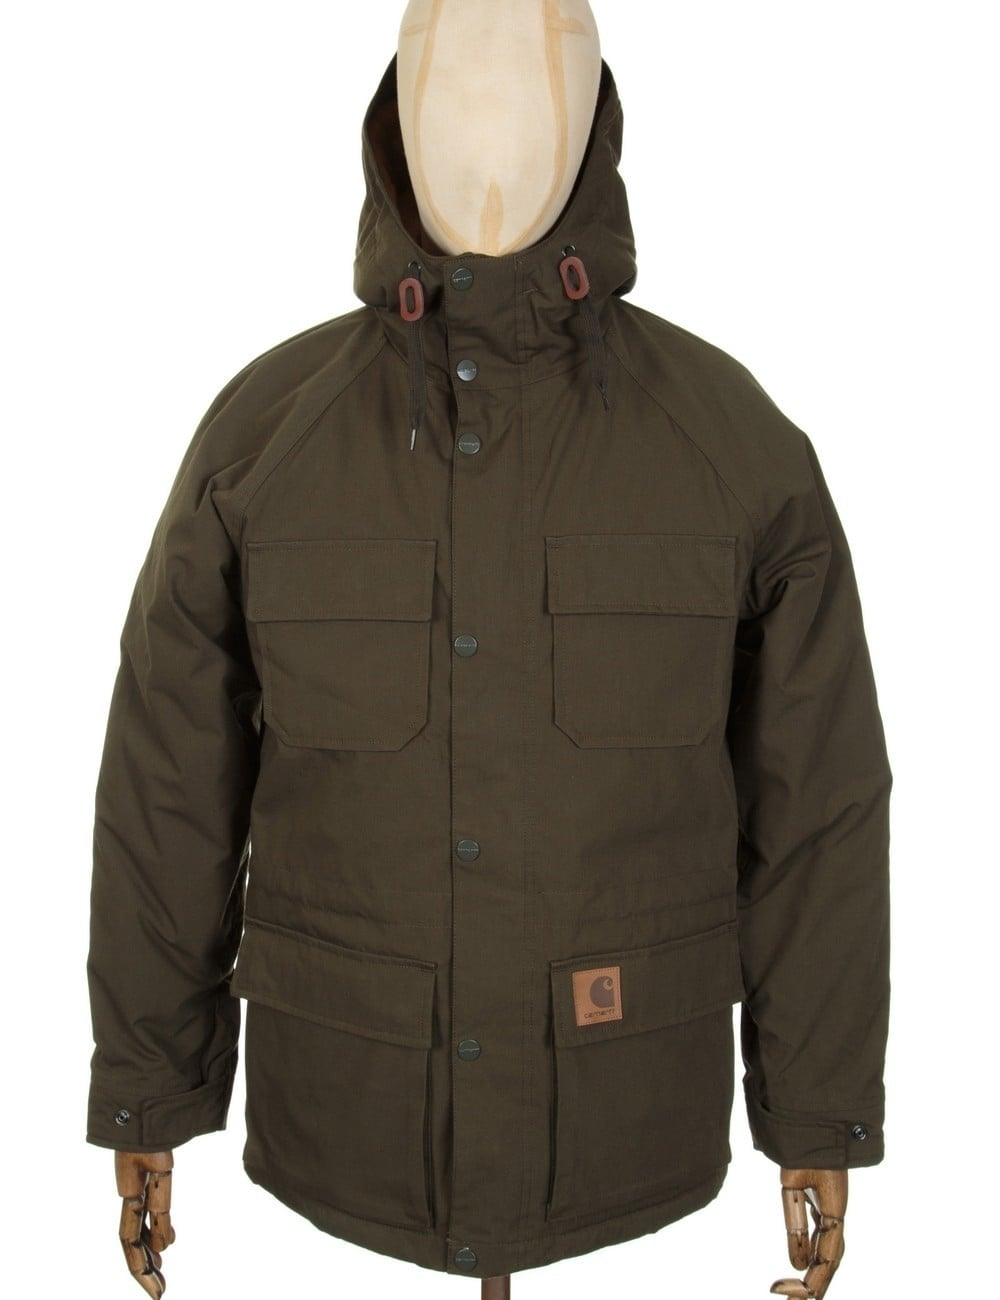 df0a58a3b Mentley Jacket - Cypress